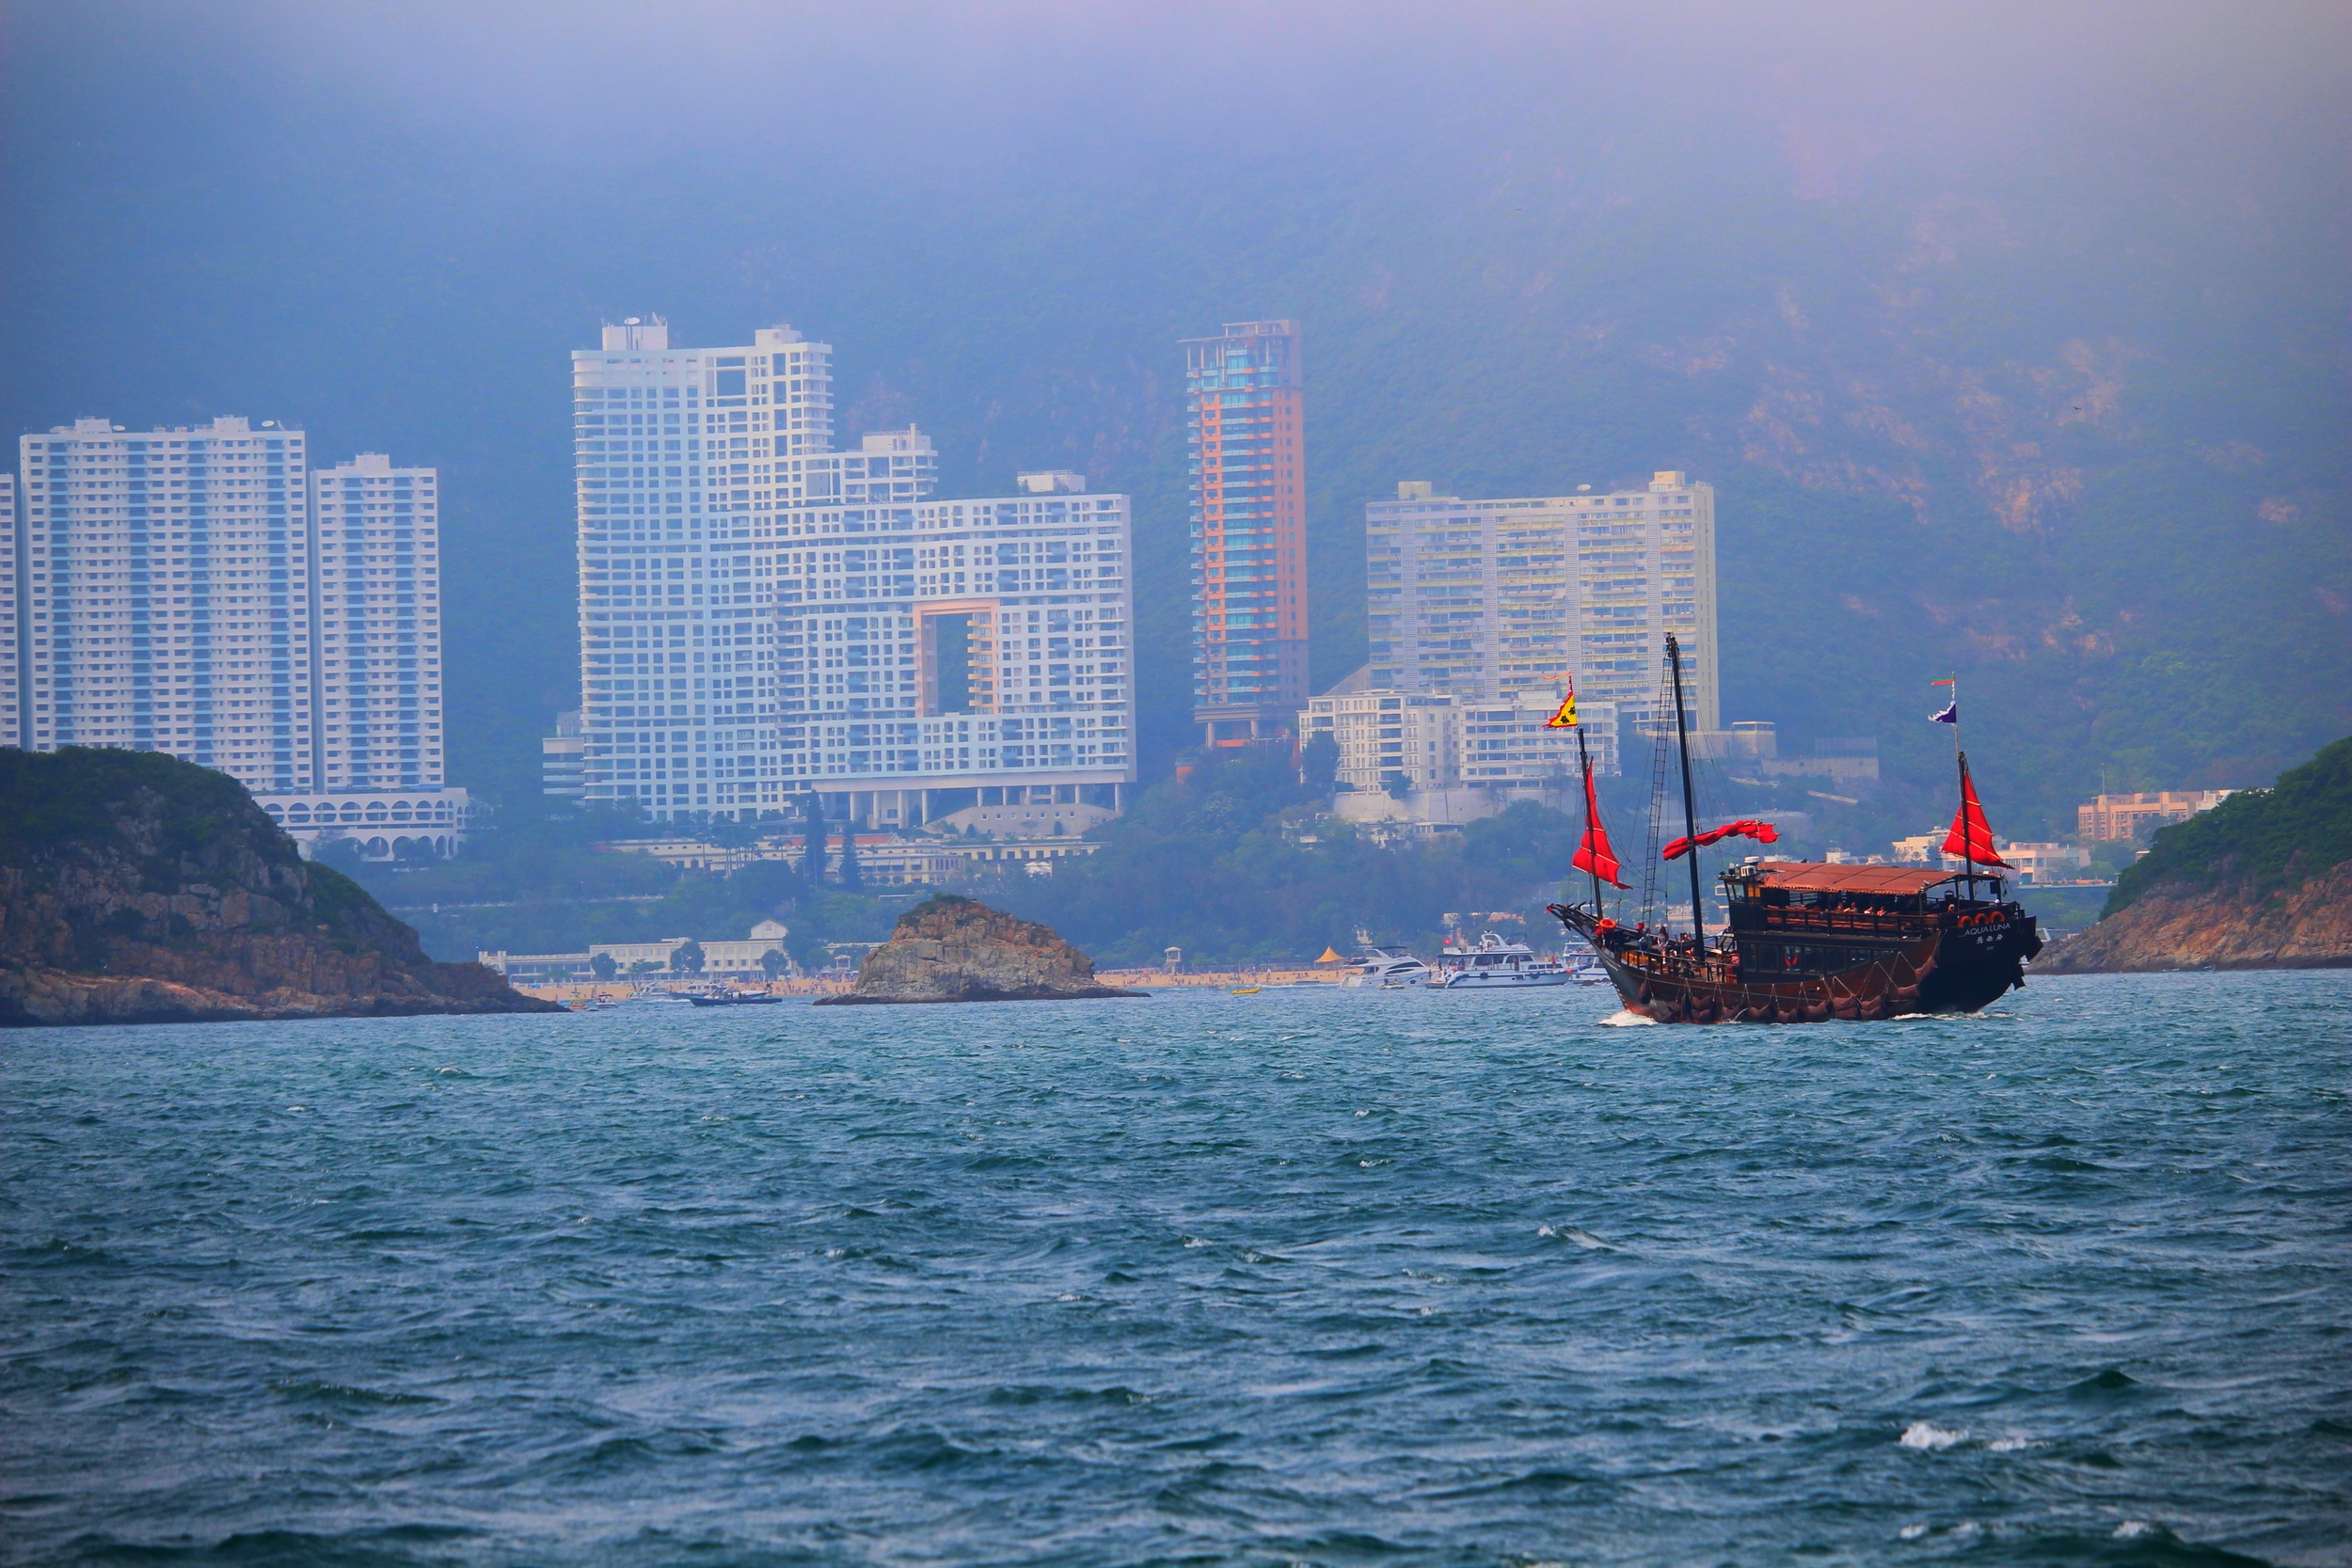 The Aqua Luna in Repulse Bay